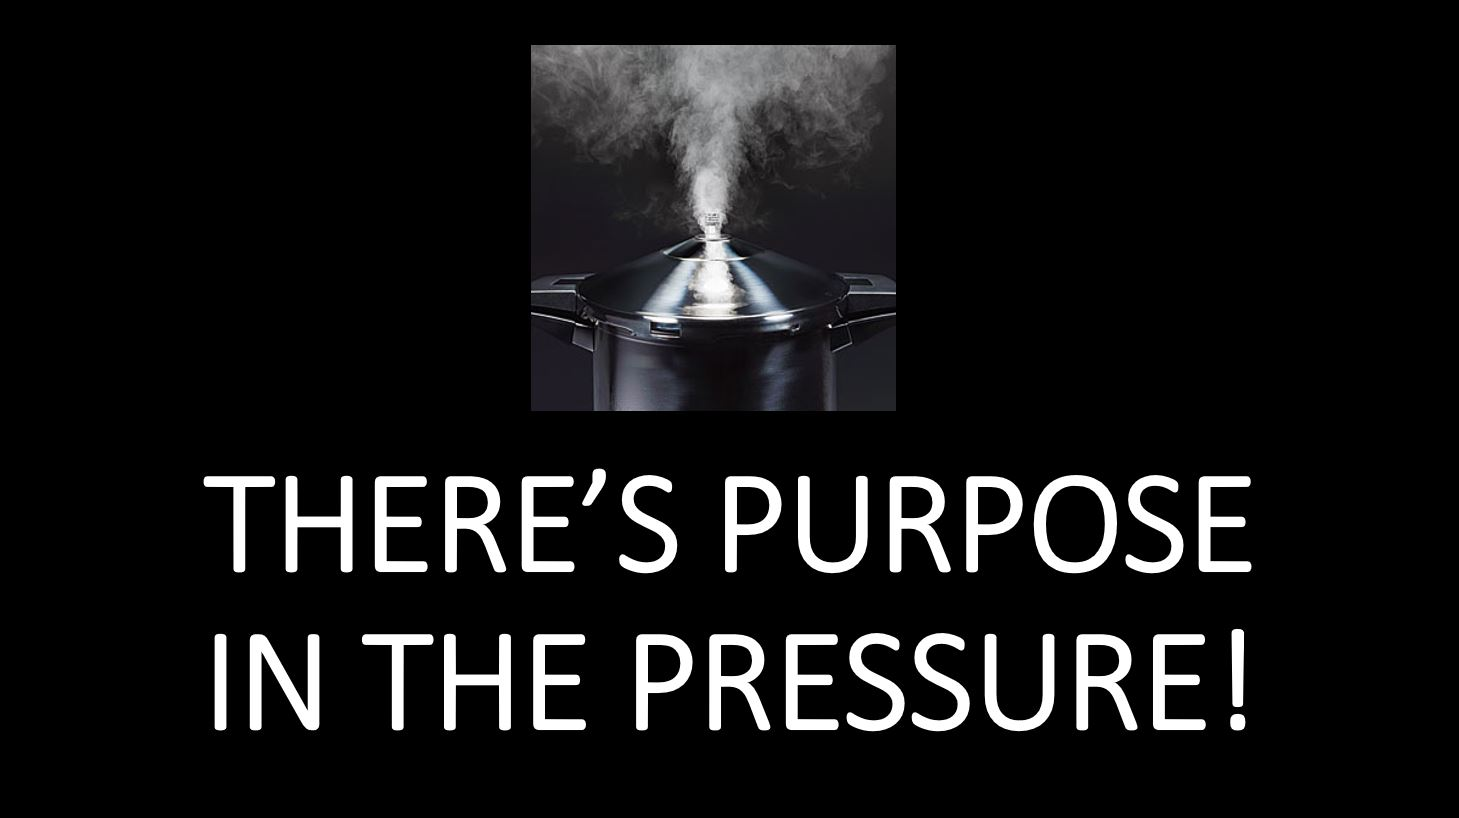 There is Purpose In The Pressure